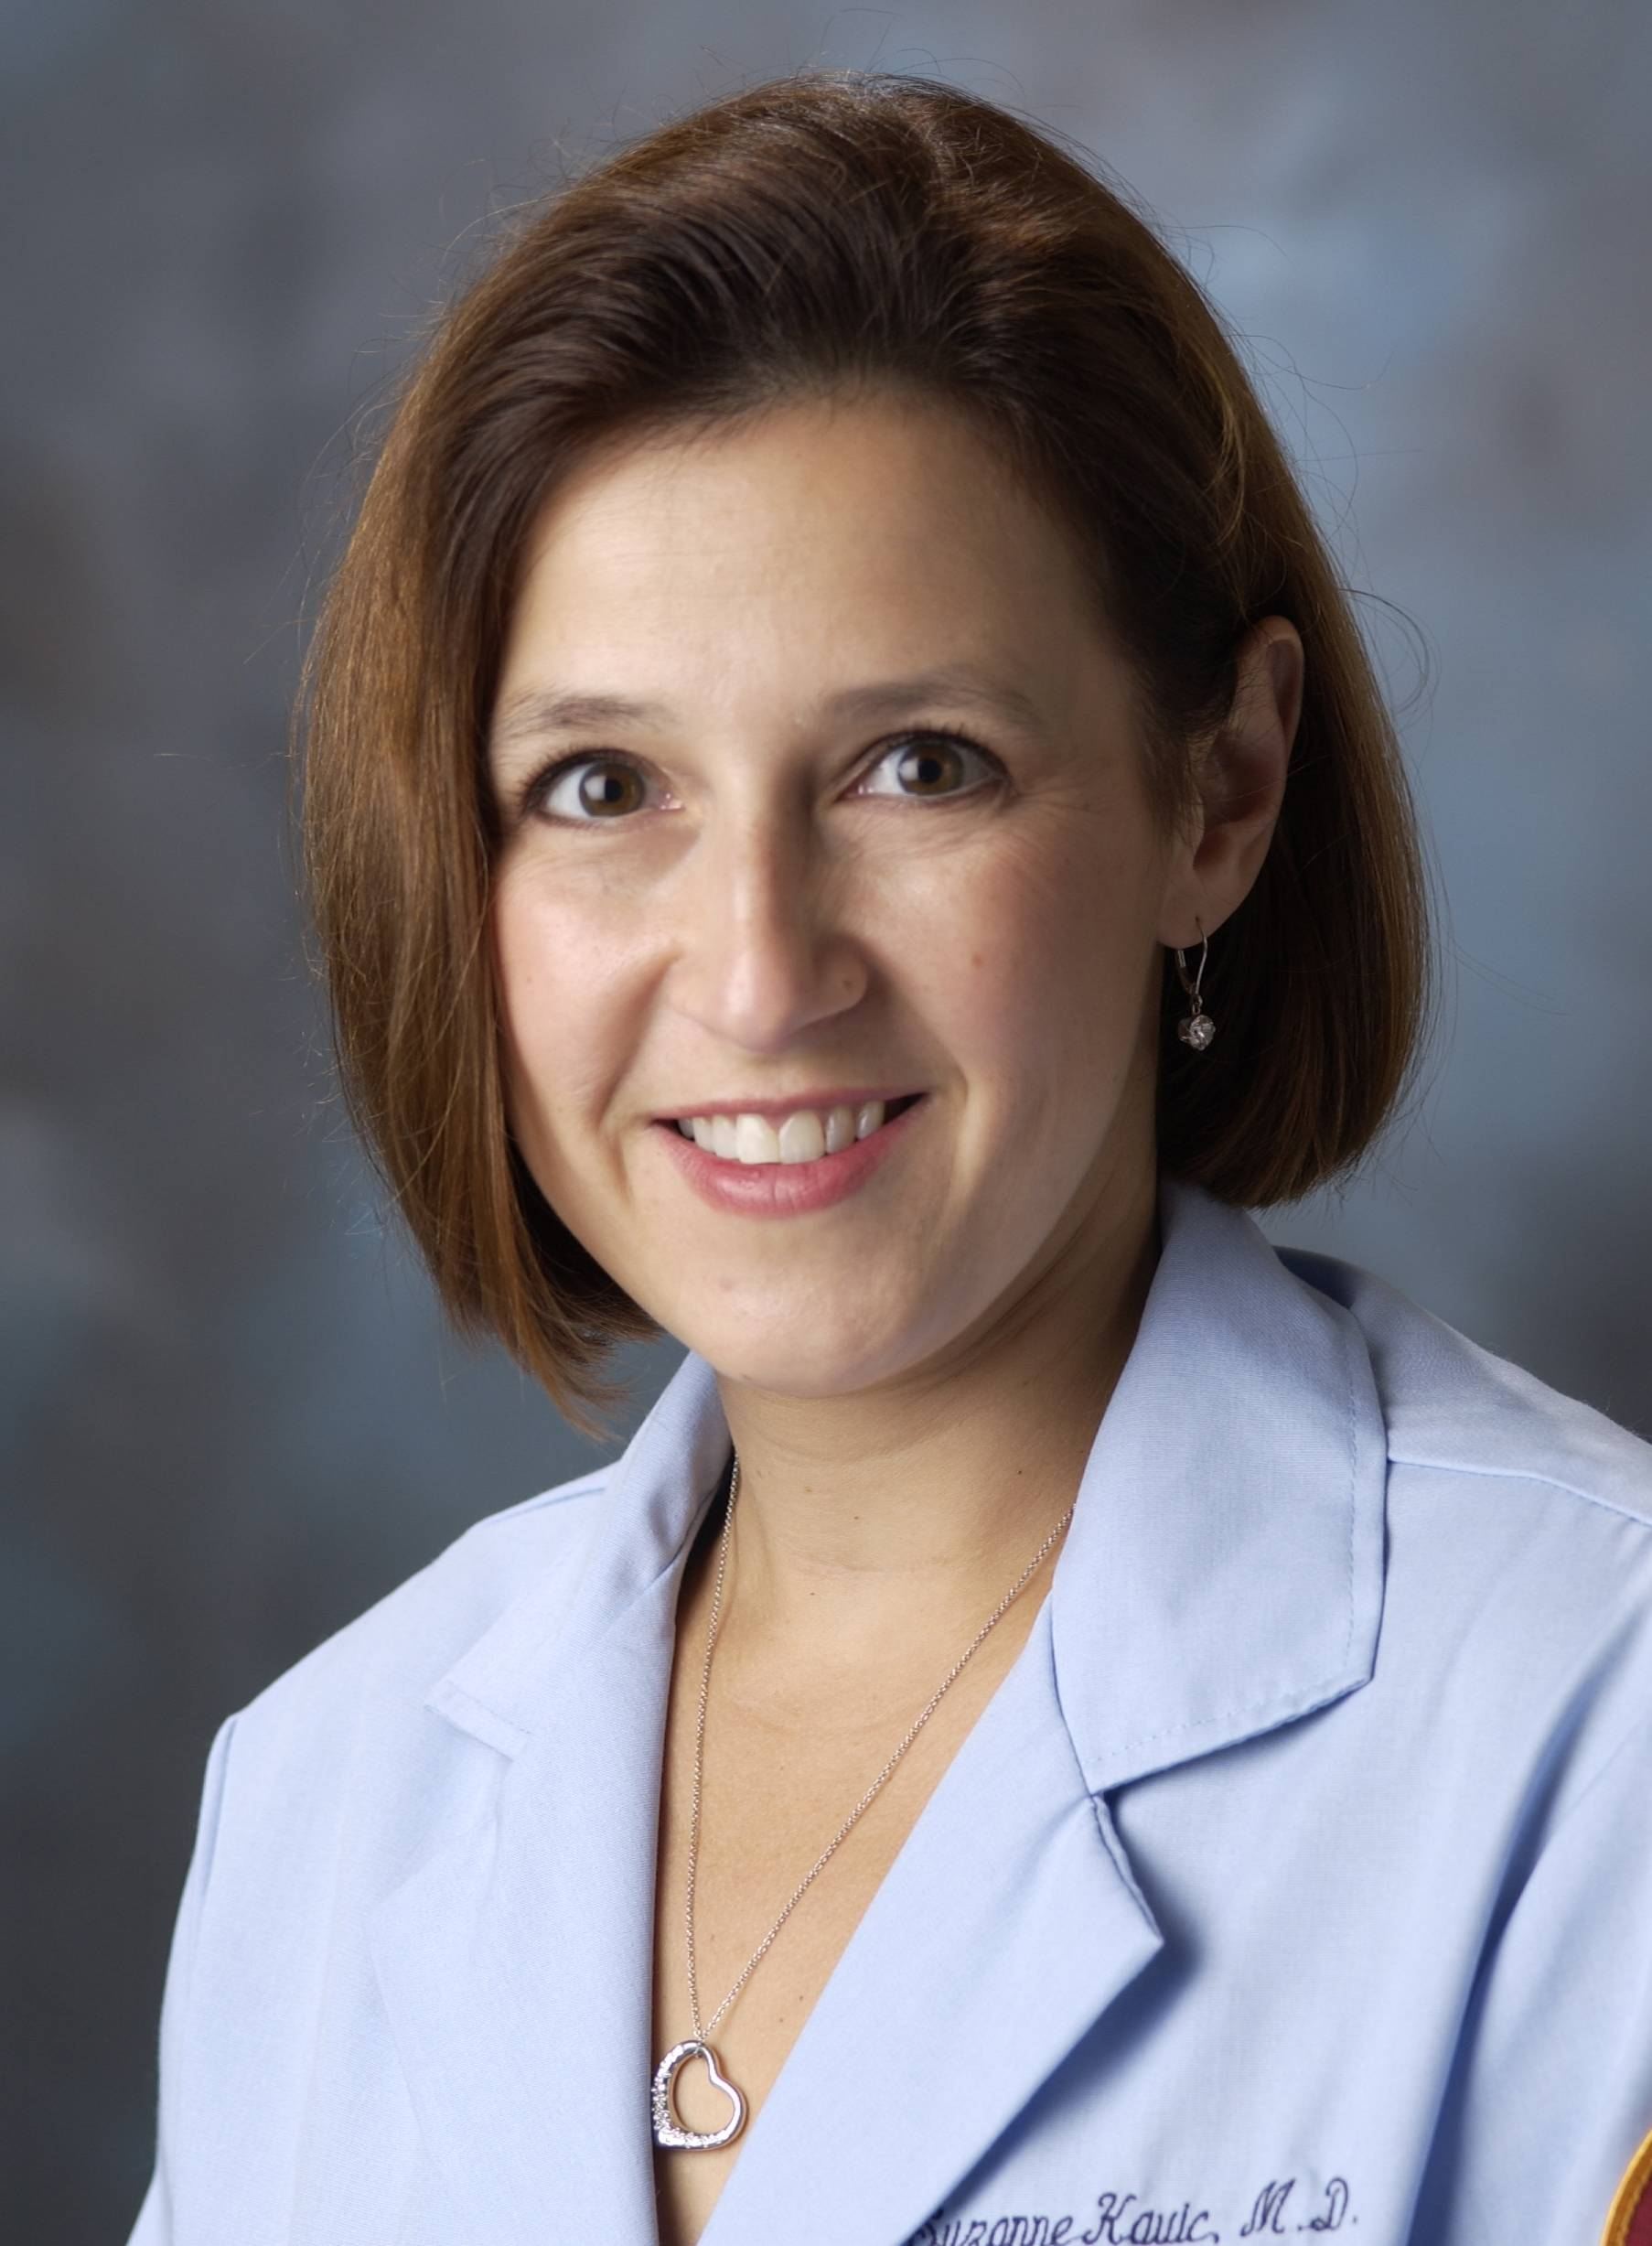 Suzanne M. Kavic, MD